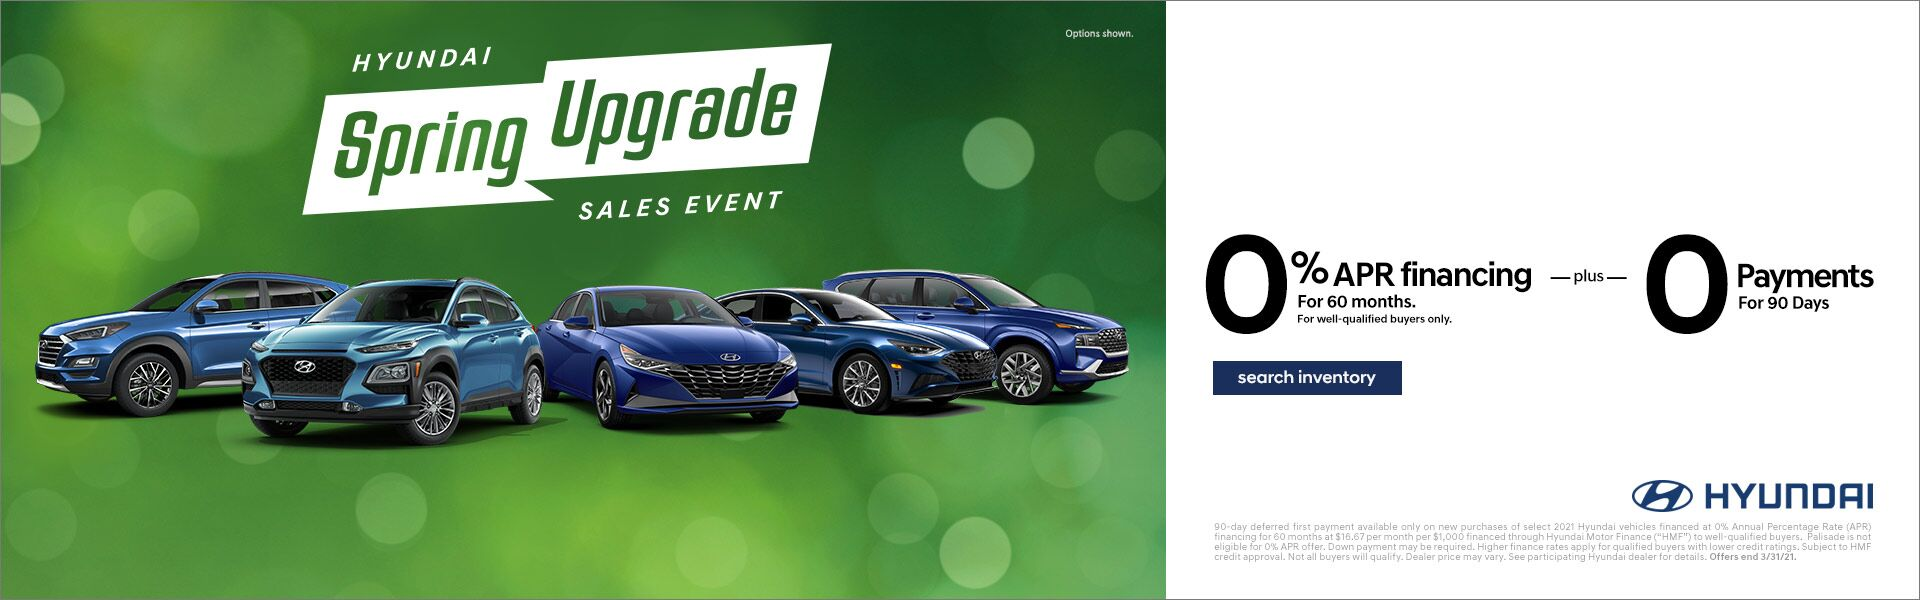 March - Hyundai Spring Upgrade Sales Event